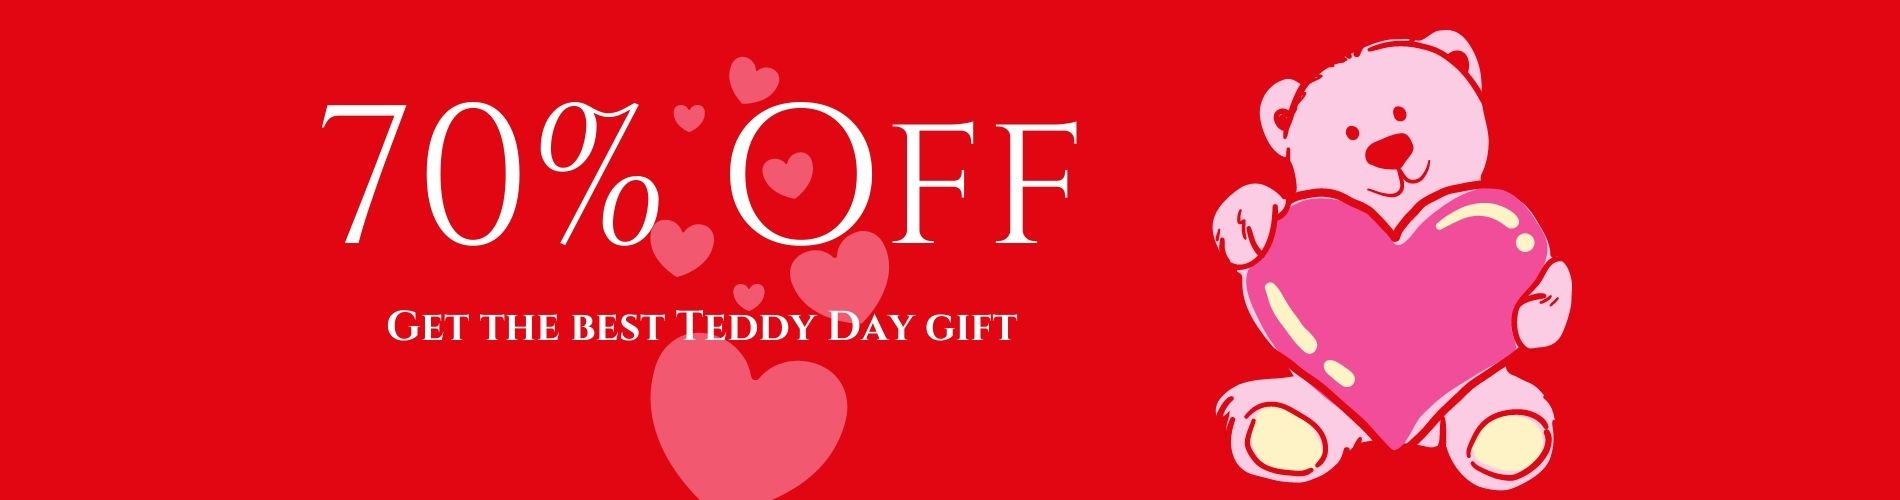 Upto 70% Off on Gifts Browse for the best Gift on Teddy day Get extra flopoffer cashback upto 7%